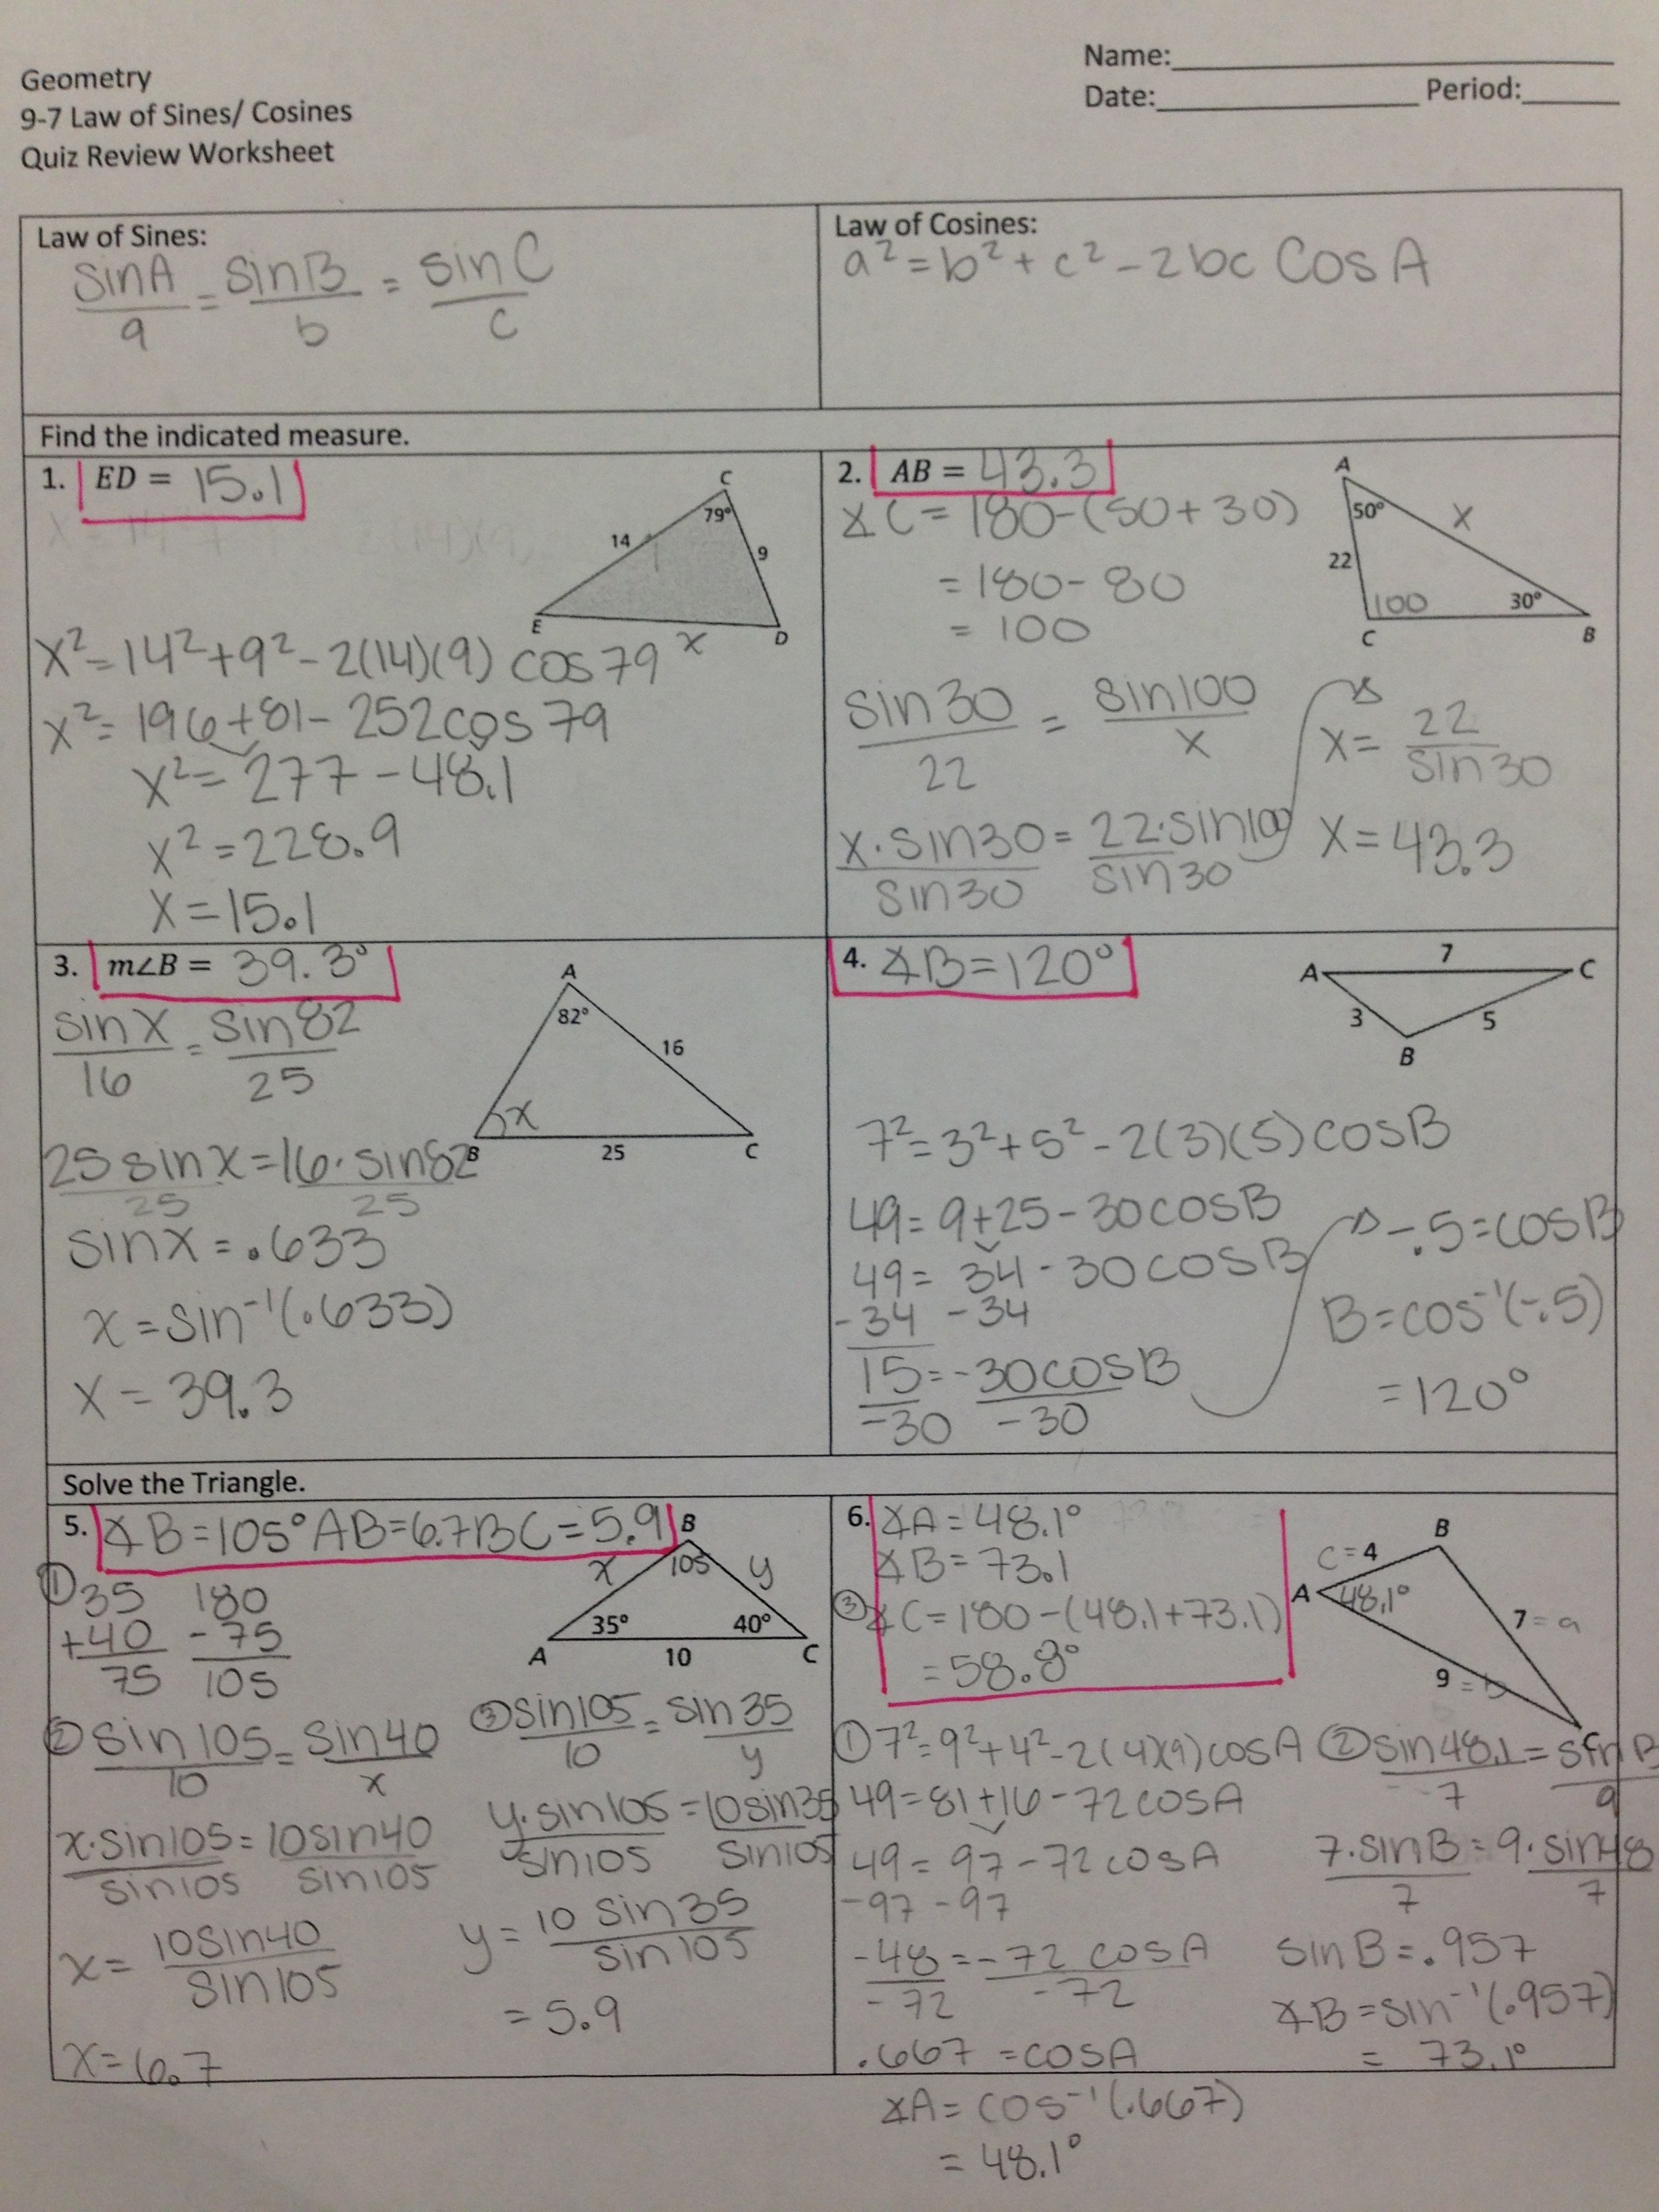 worksheet Law Of Sines And Cosines Review Worksheet valencia high school law of sines cosines quiz review worksheet solutions attached